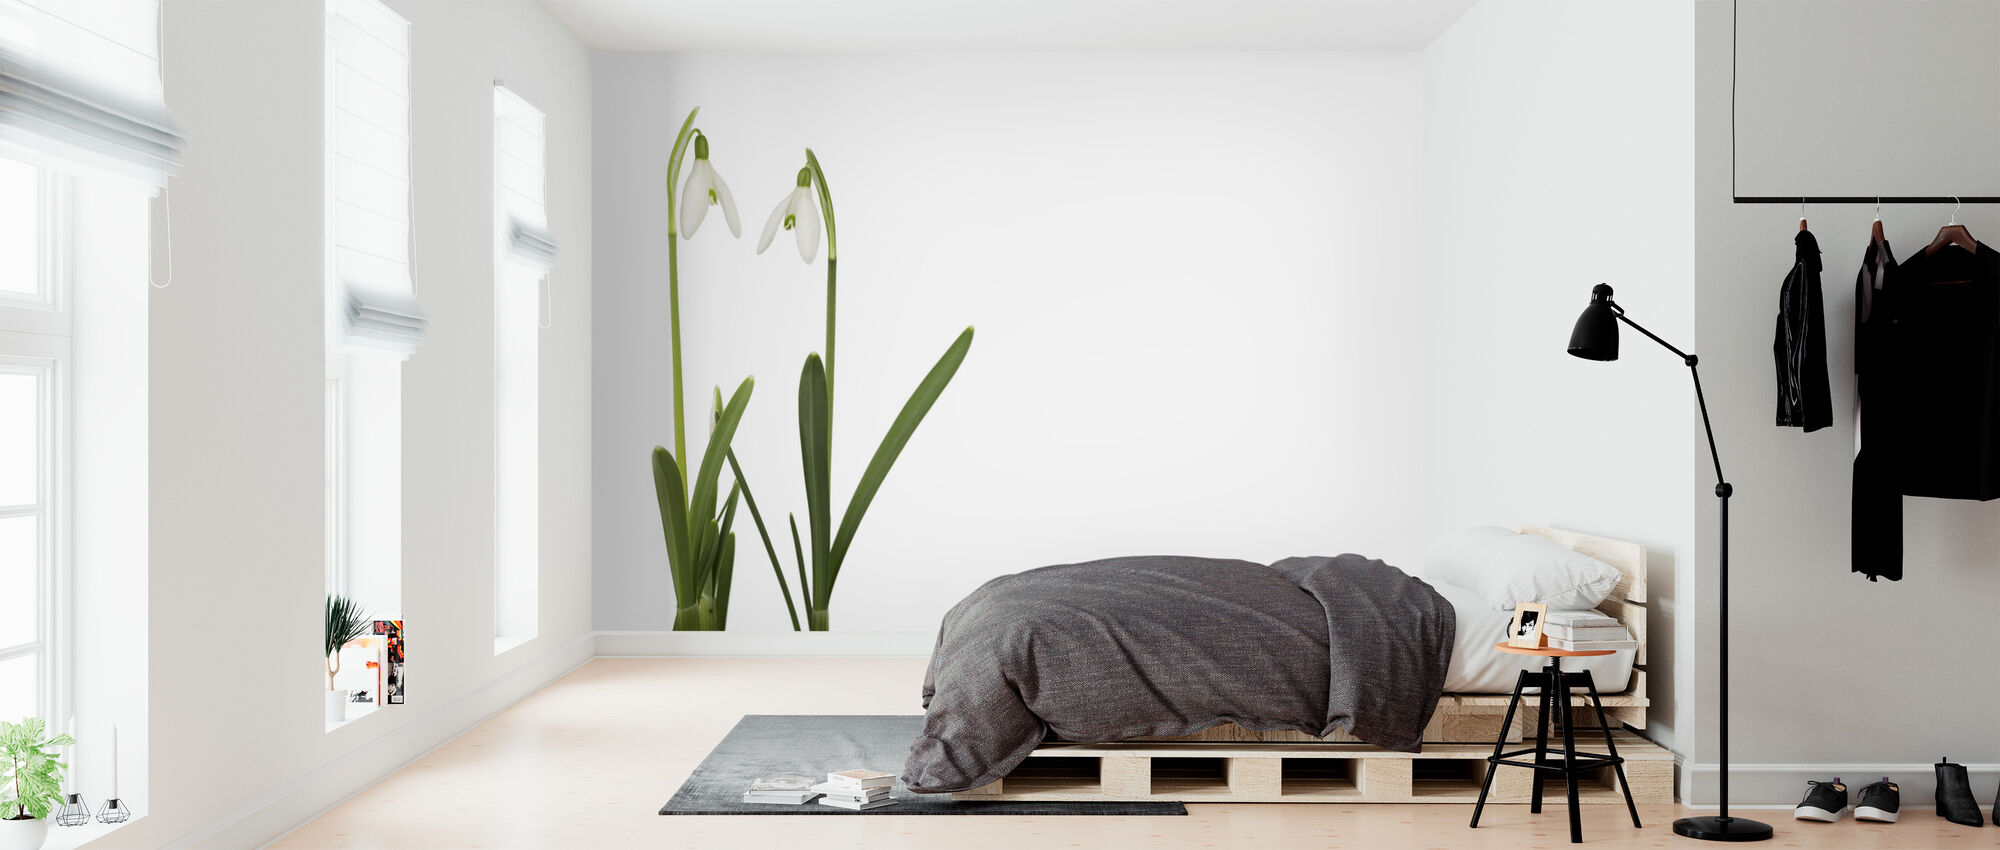 Snow Drop - Wallpaper - Bedroom